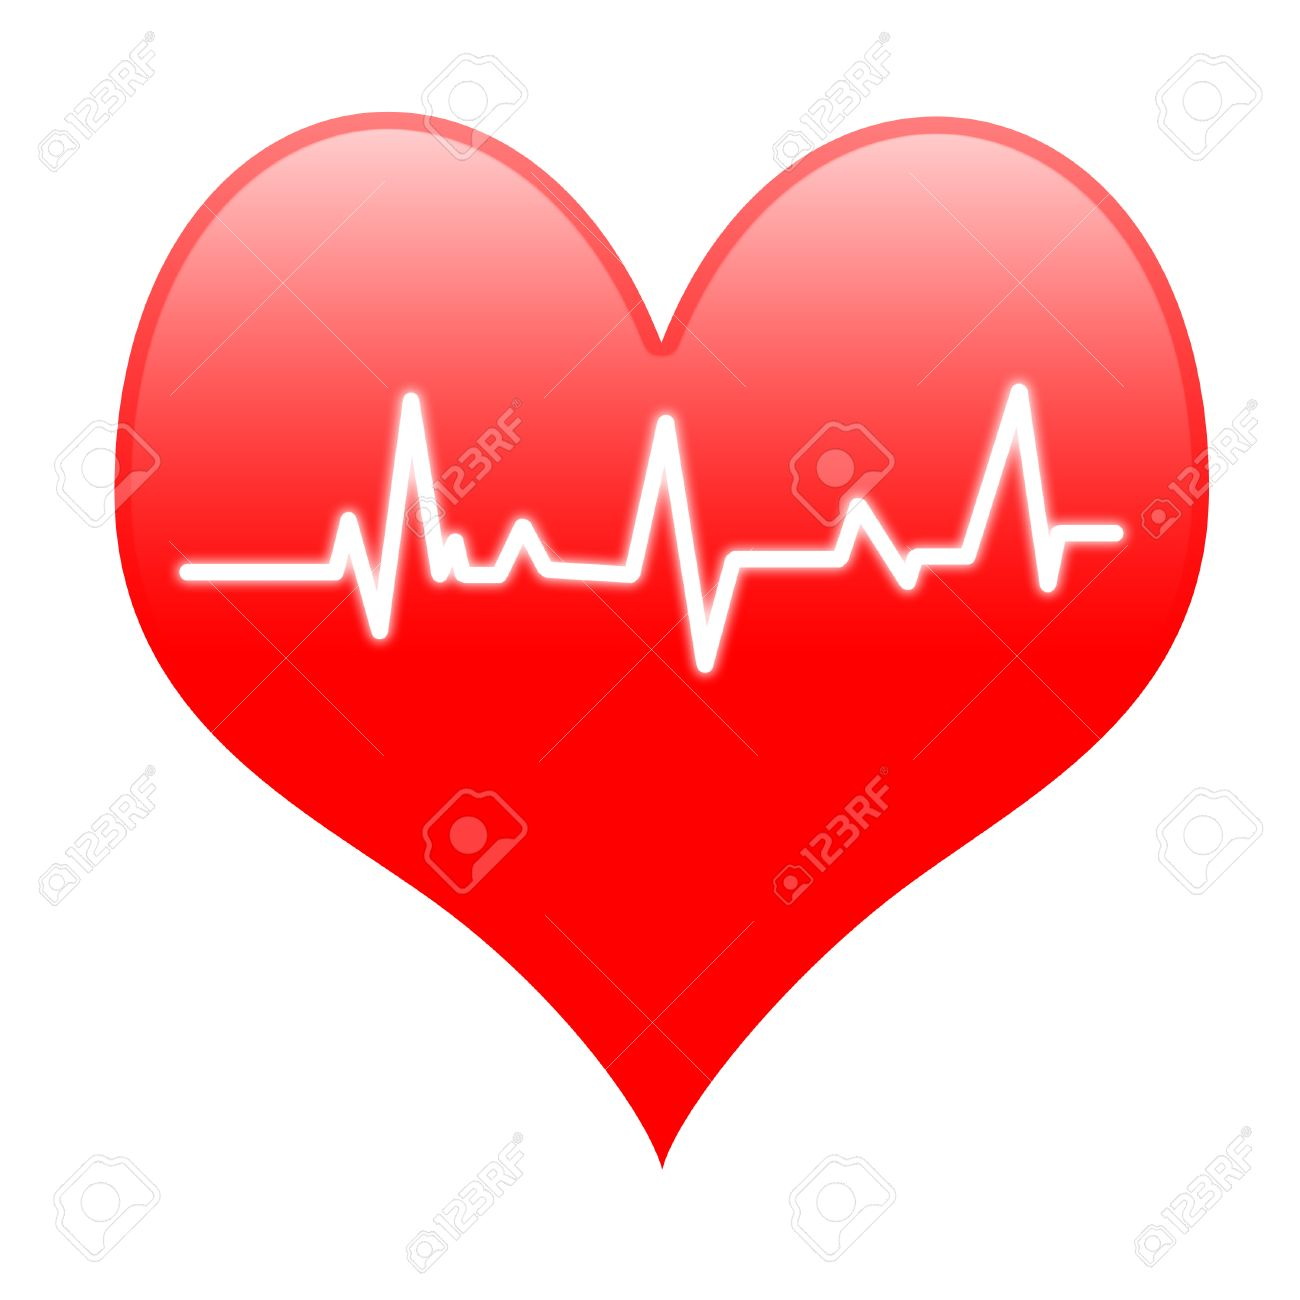 Electro On Heart Meaning Passionate Heartbeat Or Loving Beat